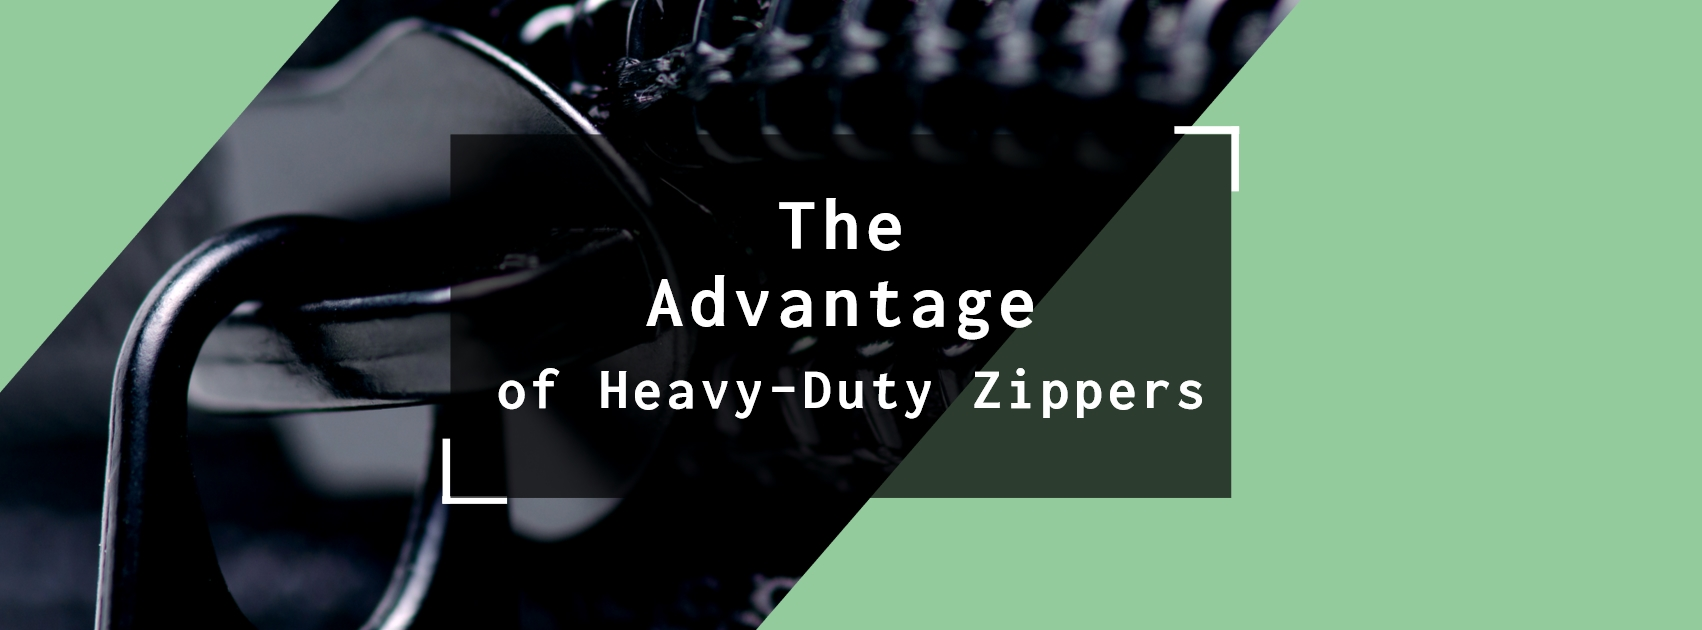 The Advantage of Heavy-Duty Zippers Banner